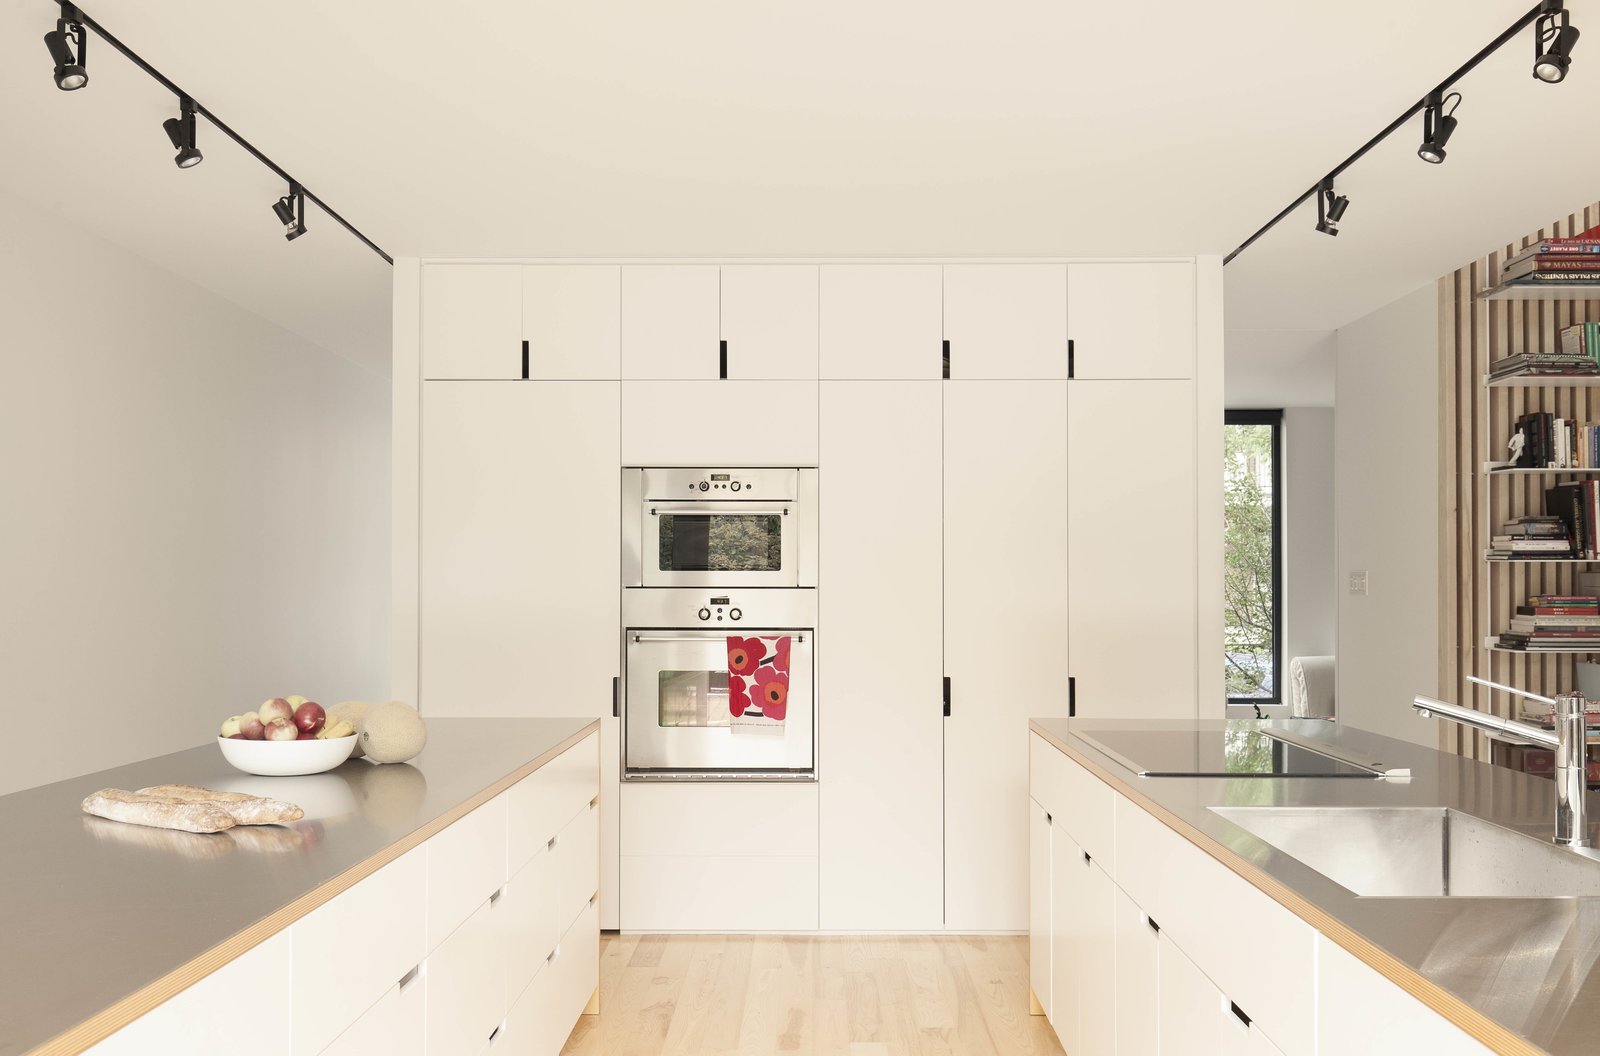 The twin kitchen islands are oriented parallel to the living room. The cabinet fronts are finished in white lacquer, with stainless-steel counters atop ash veneer.